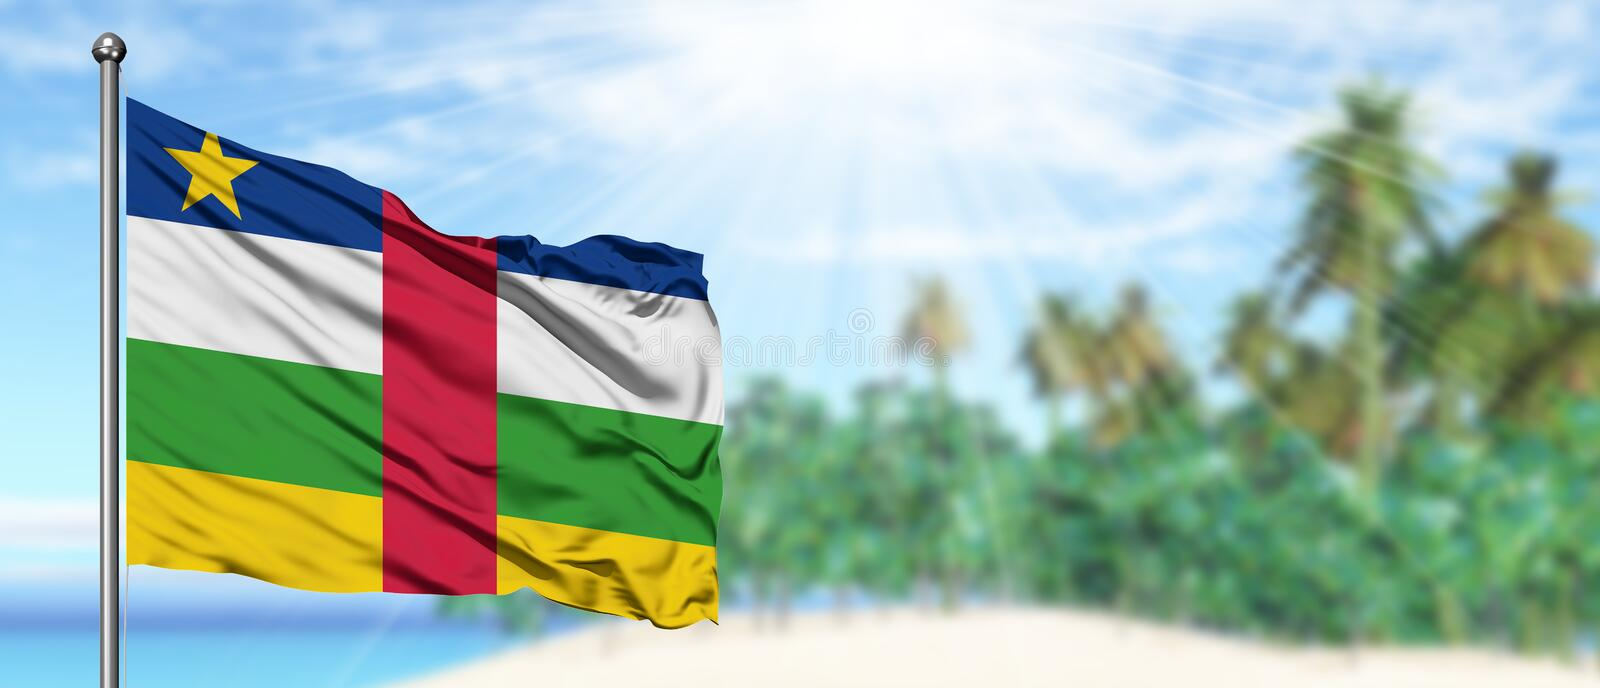 Waving Central African Republic flag in the sunny blue sky with summer beach background. Vacation theme, holiday concept royalty free stock images